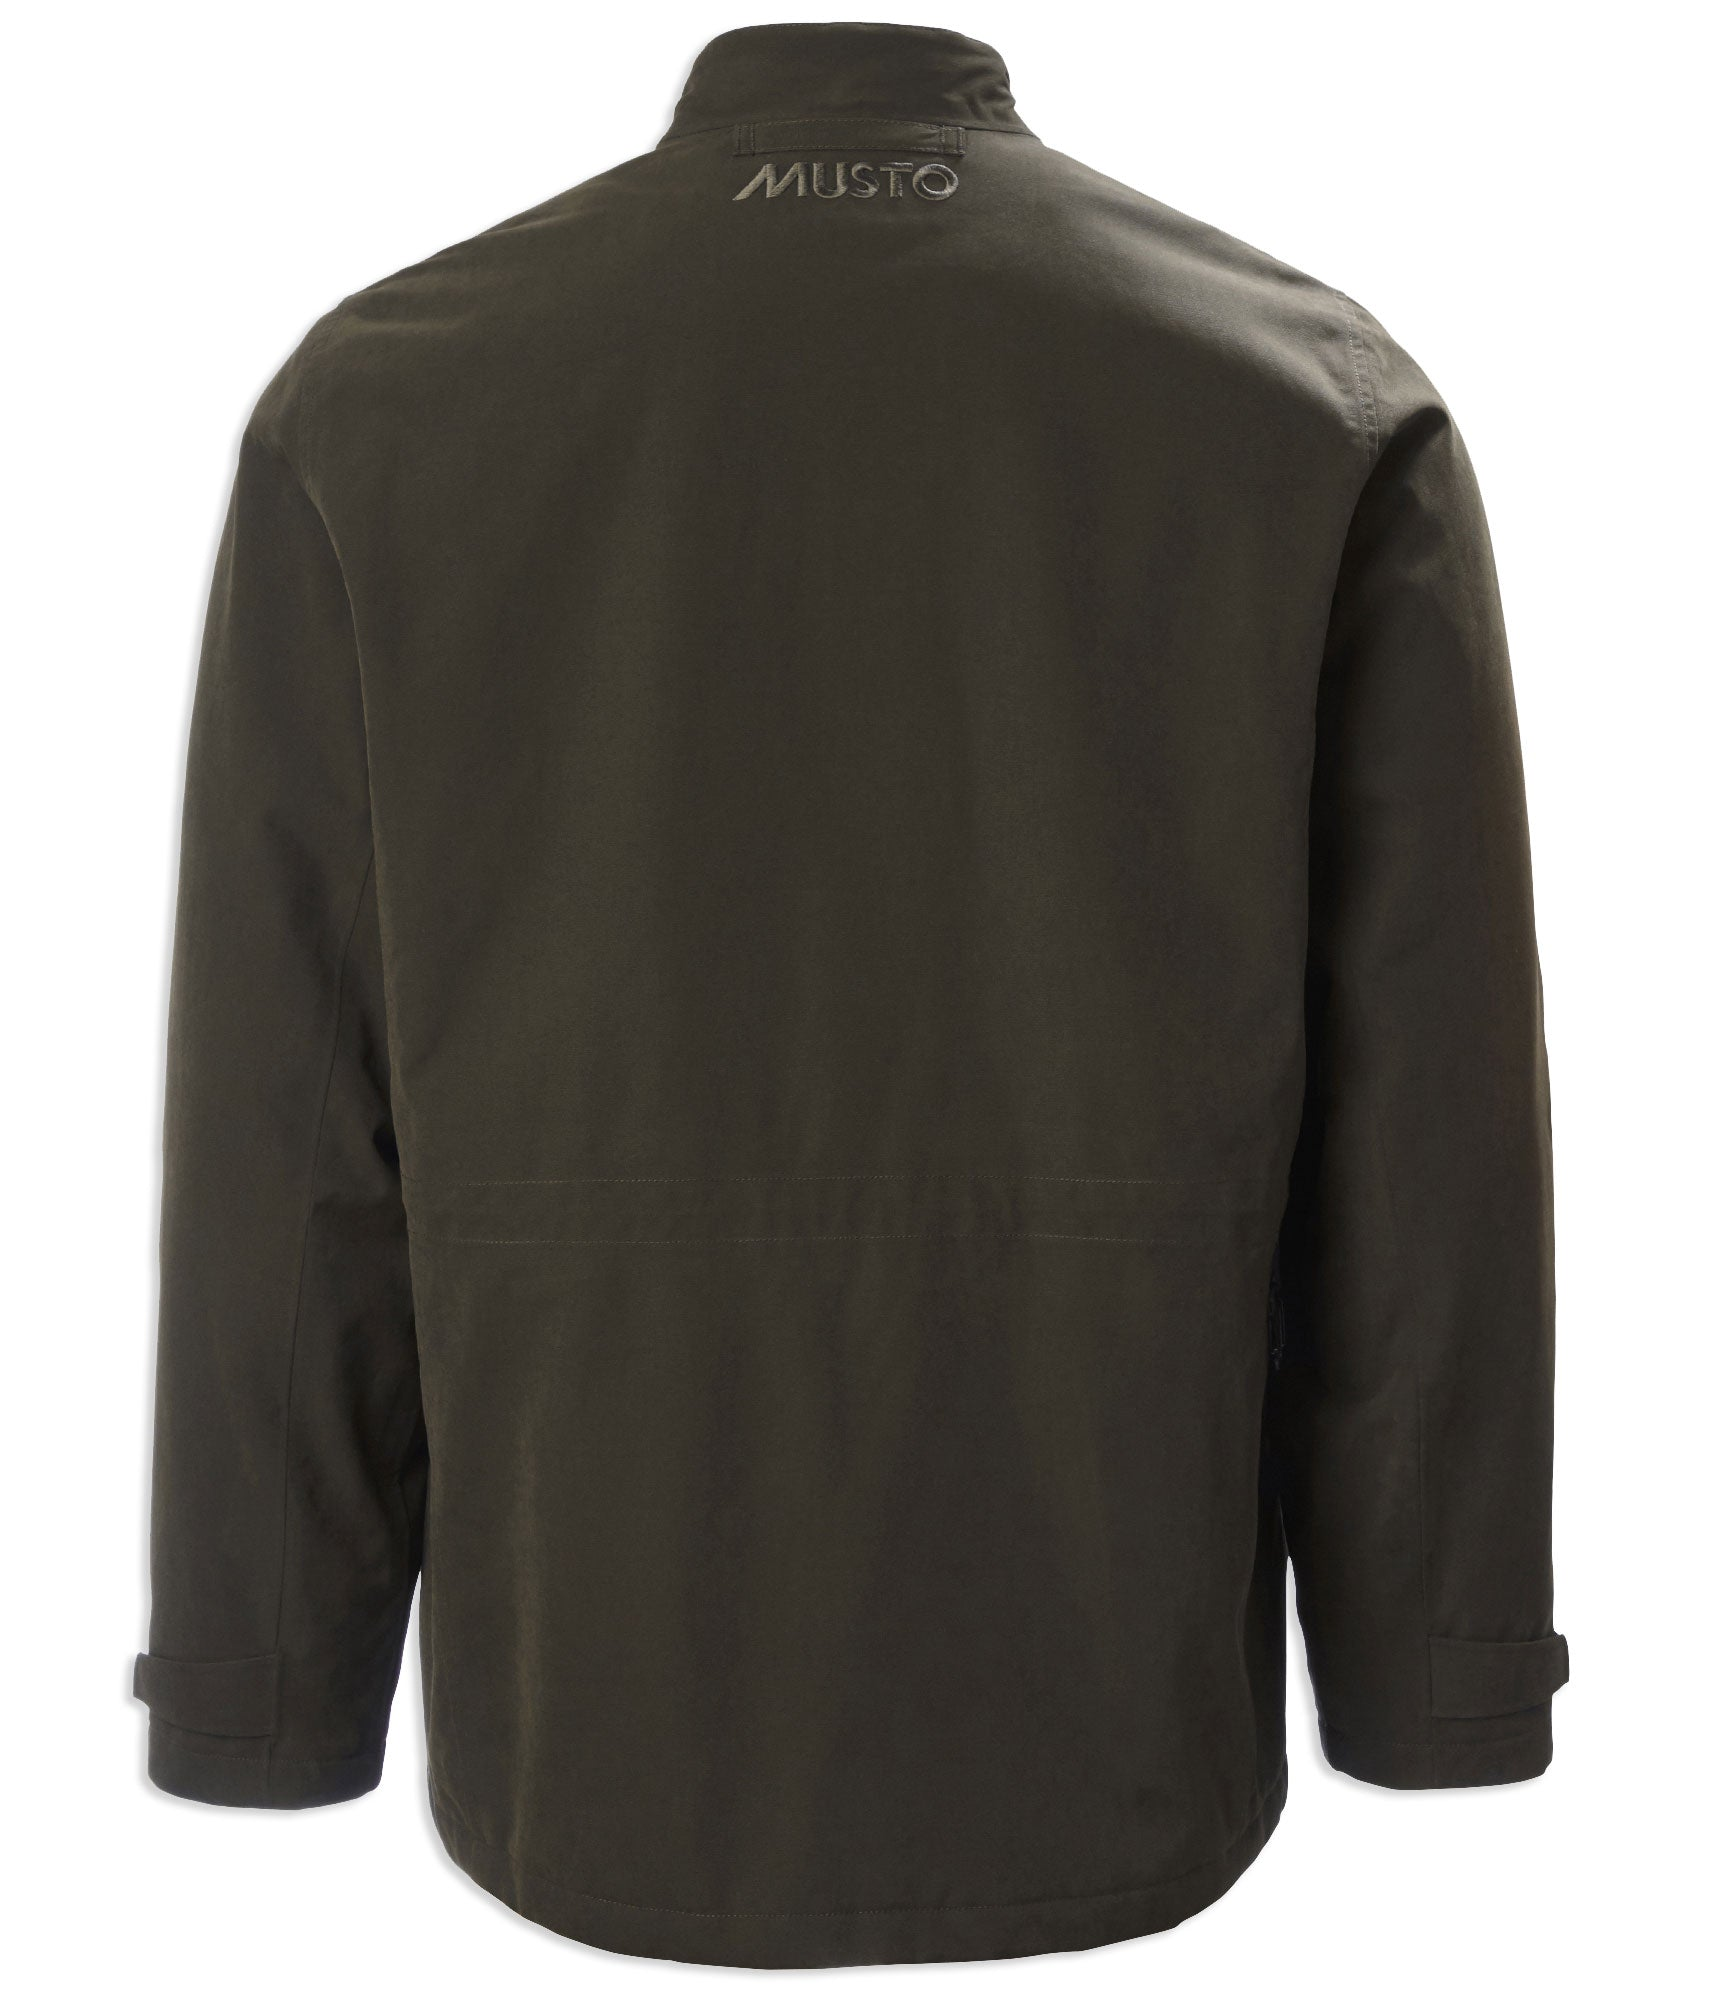 Rear View Musto Montrose BR1 Jacket